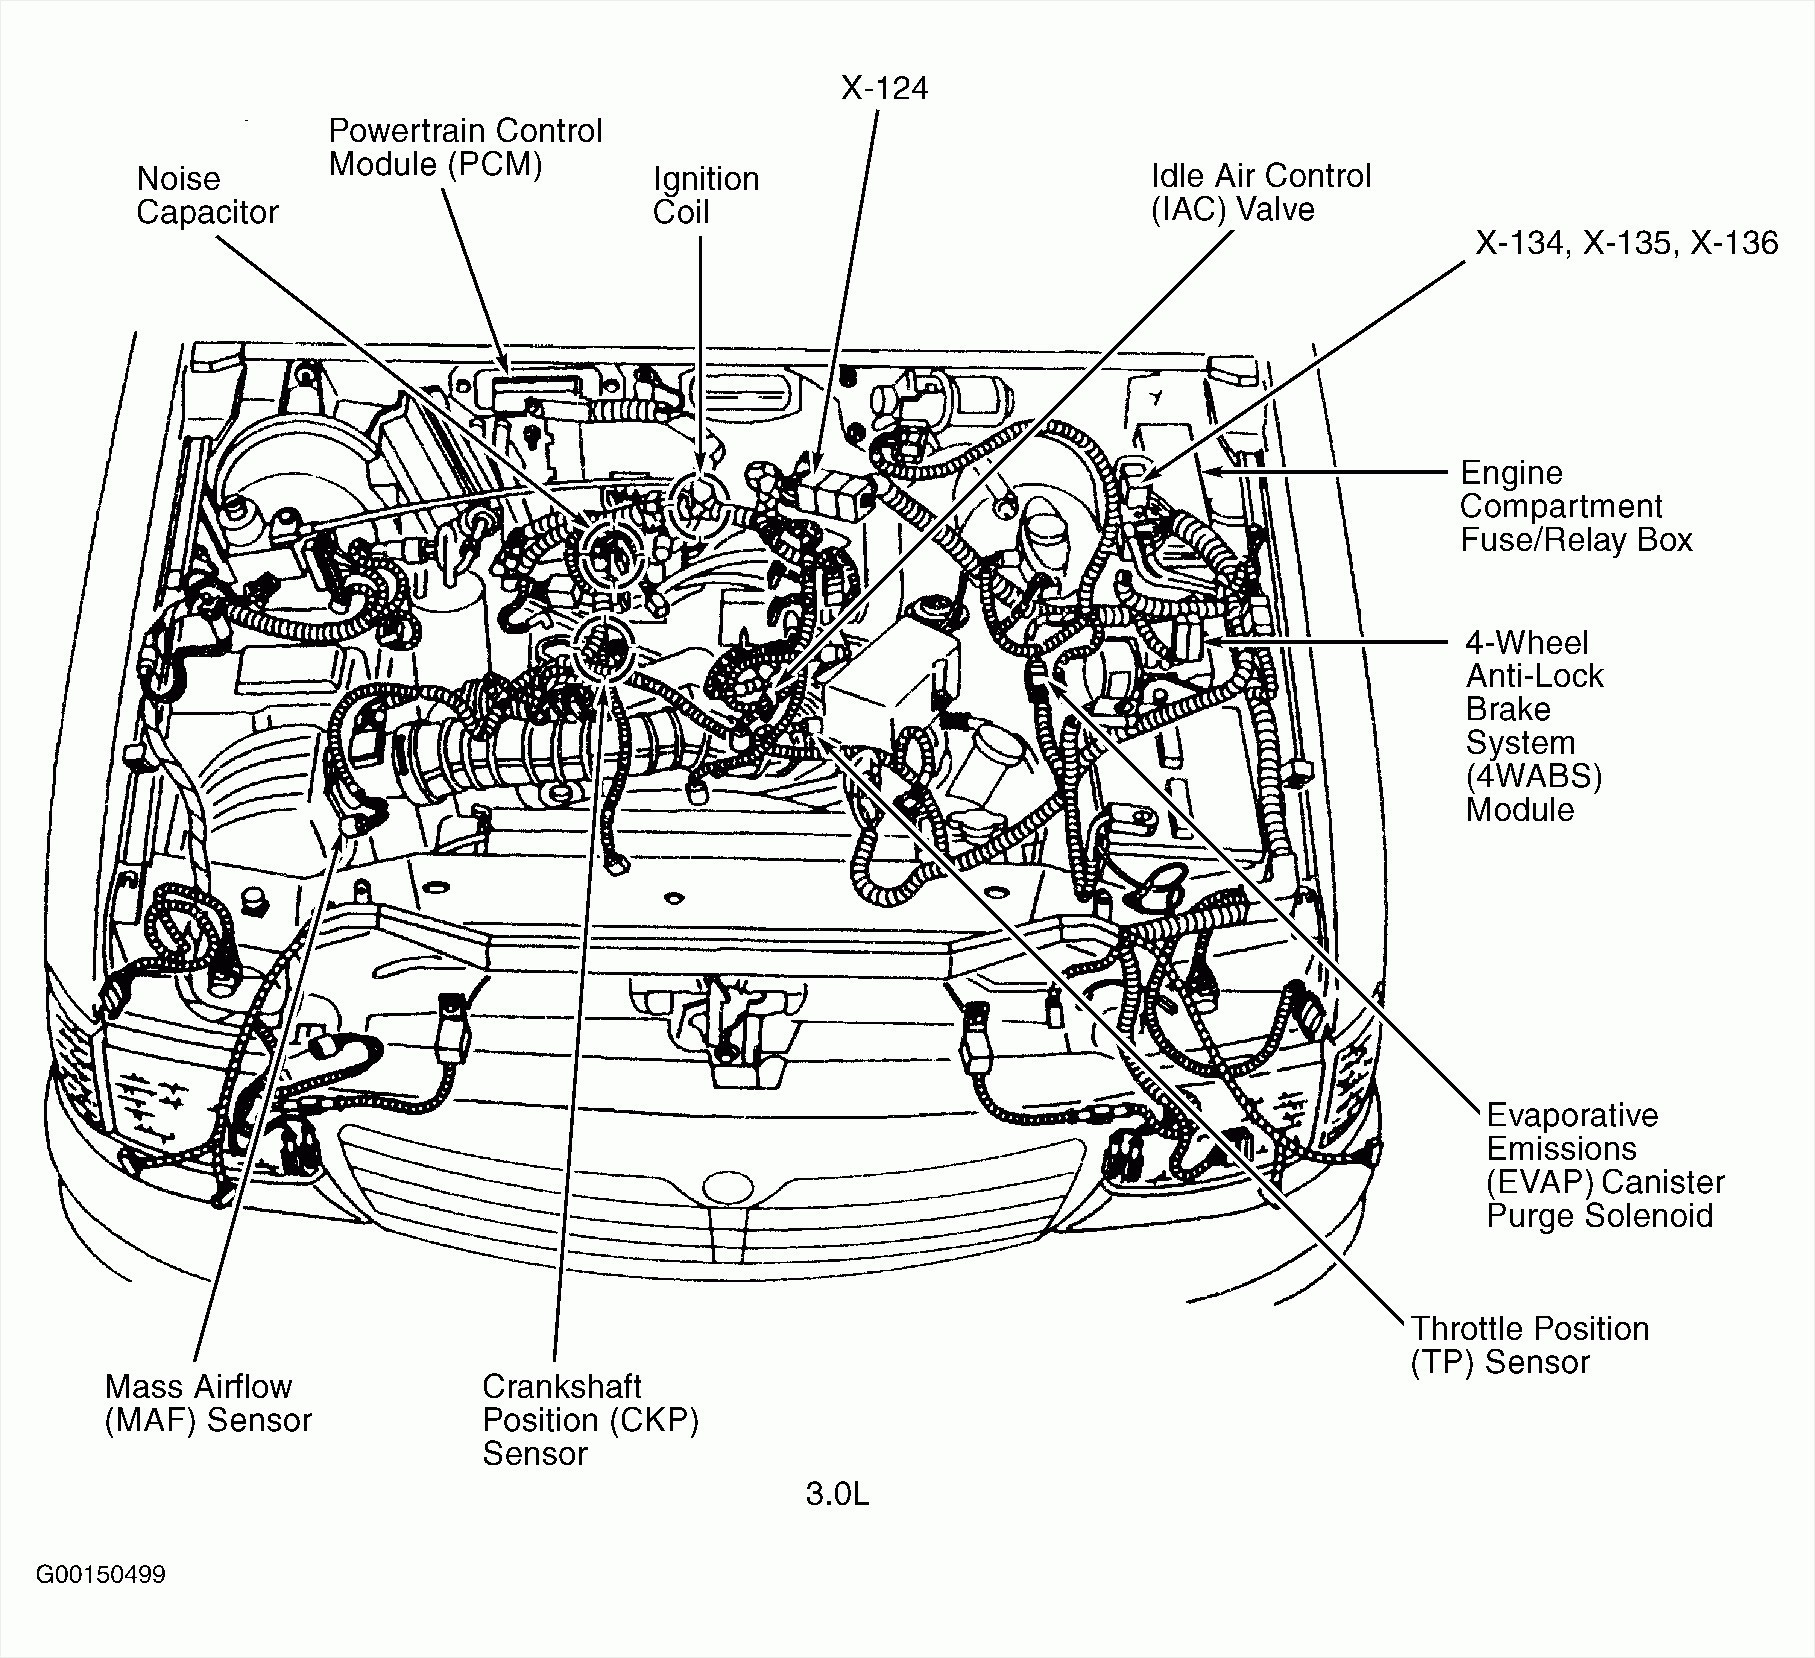 94 toyota corolla radio wiring diagram bee r rev limiter mx5 engine bay | my